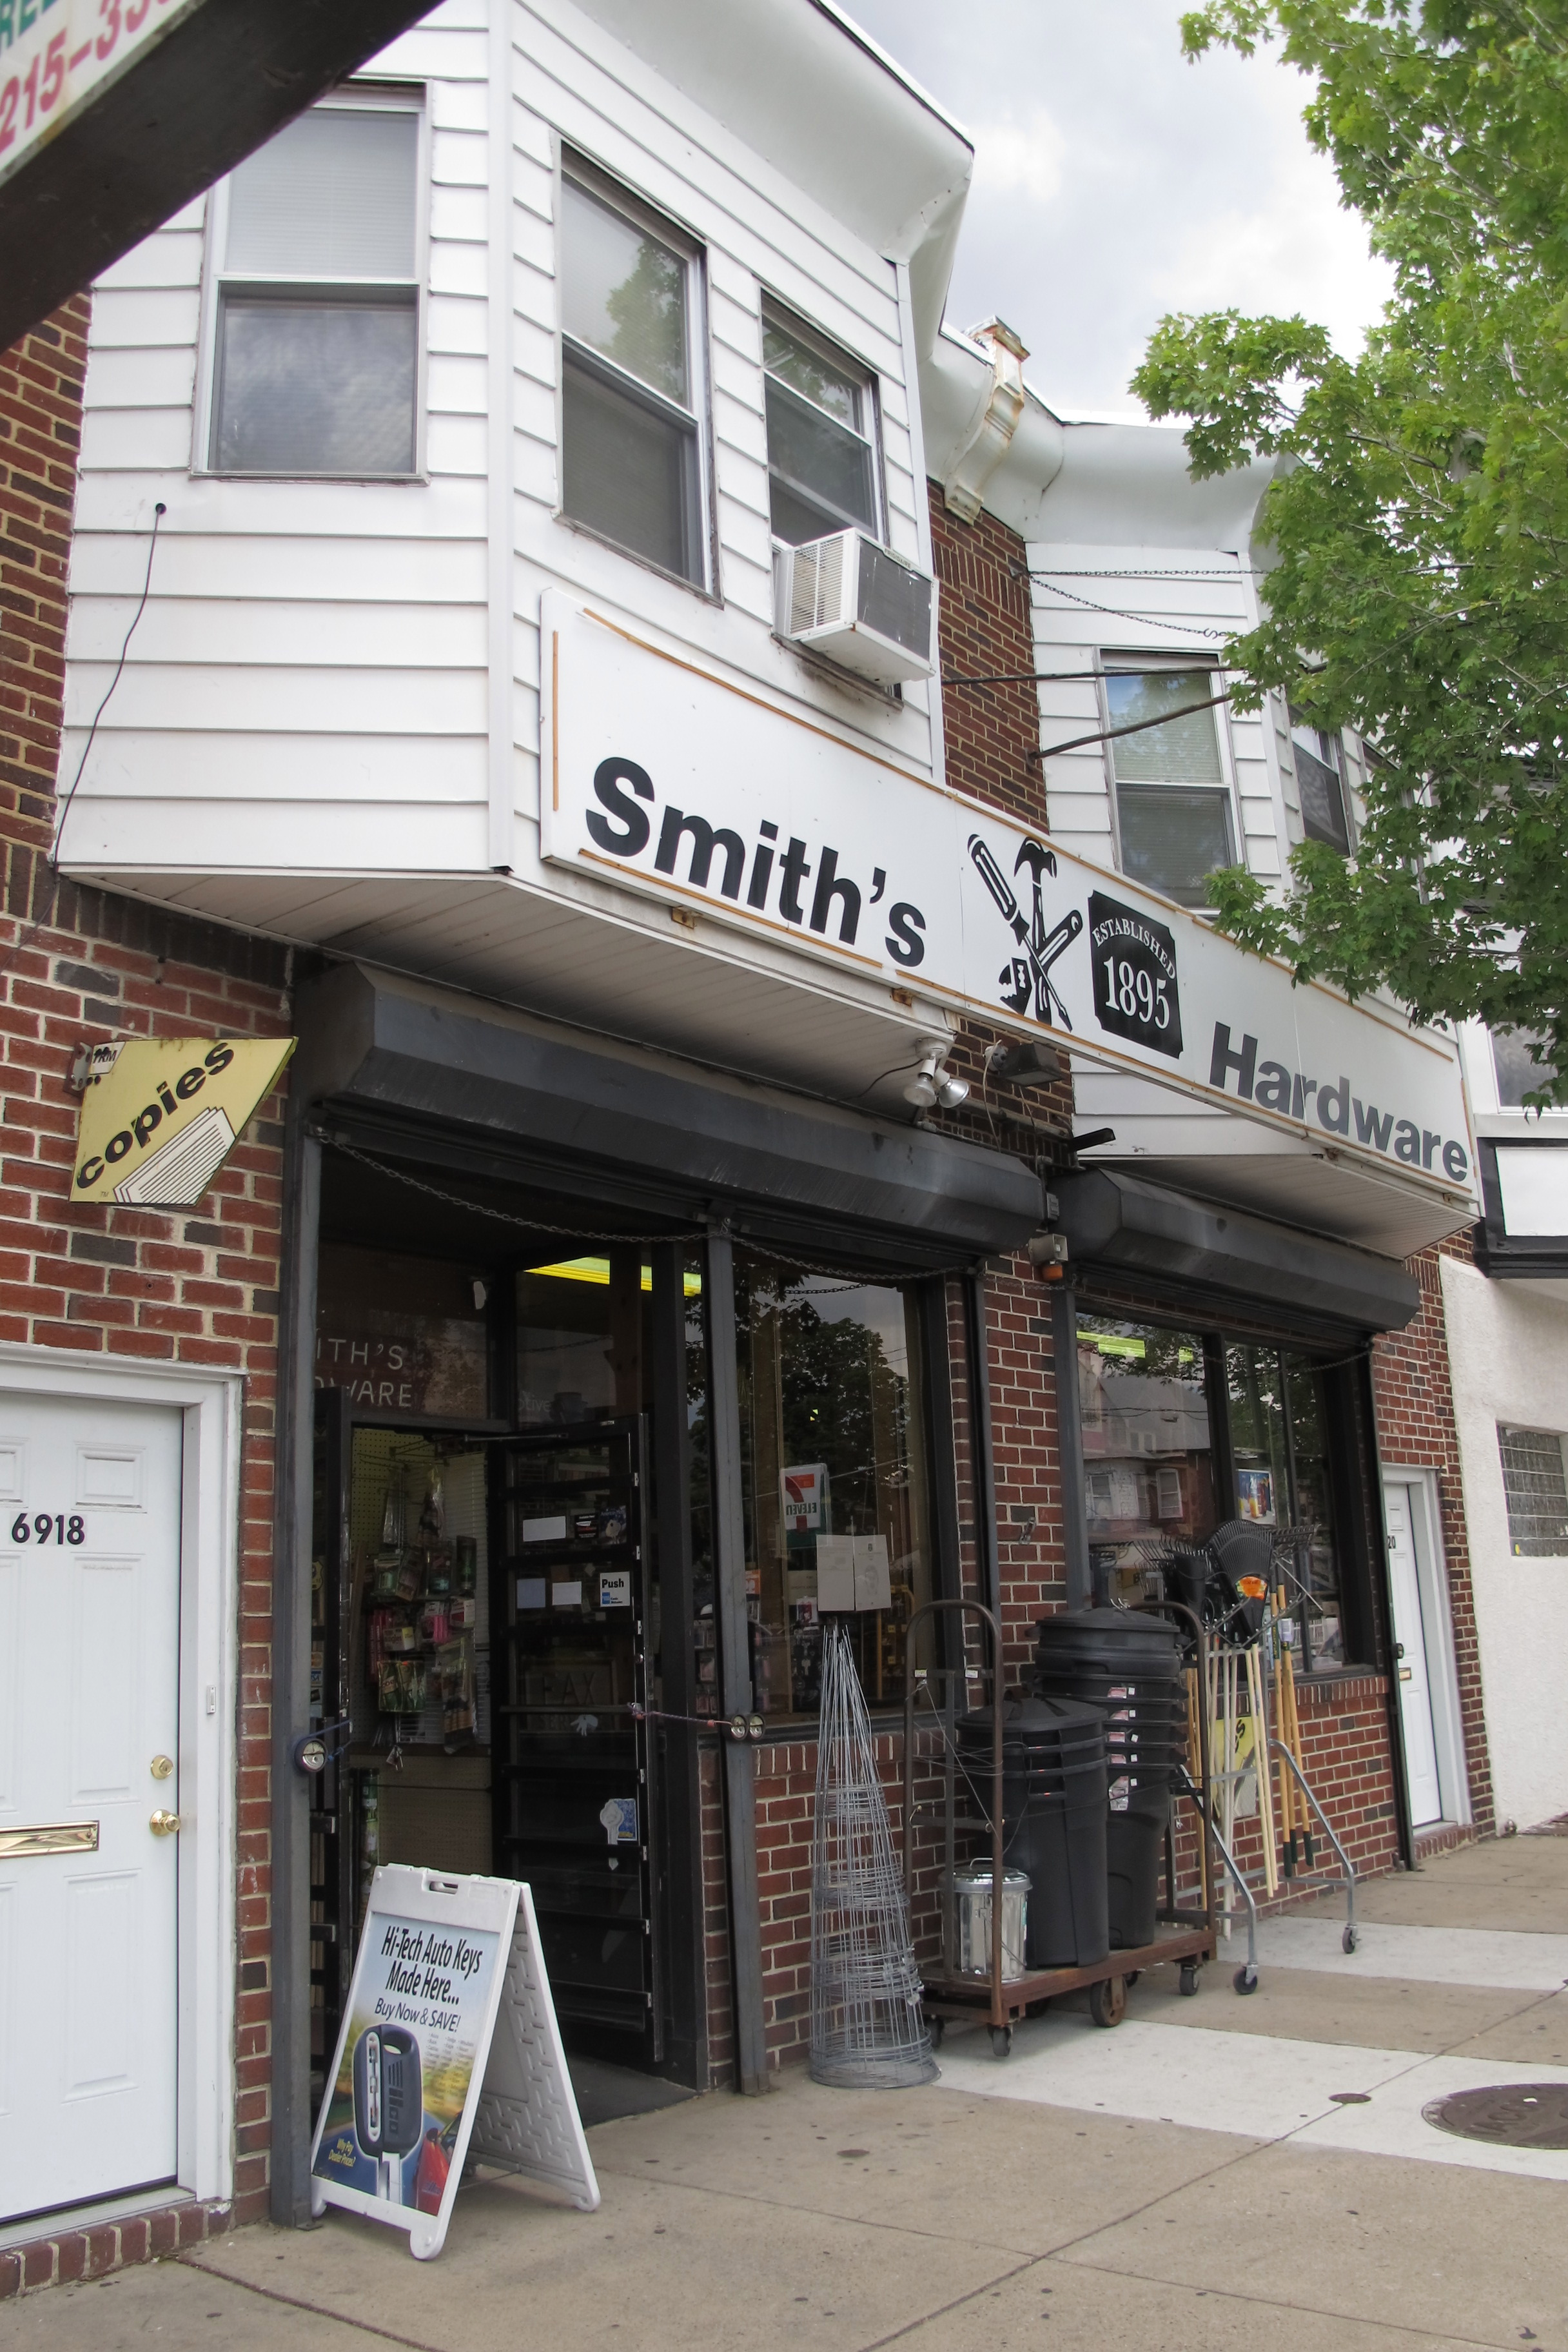 Smiths Hardware (6918 Torresdale) should soon have a new awning and woodwork where there's now siding.